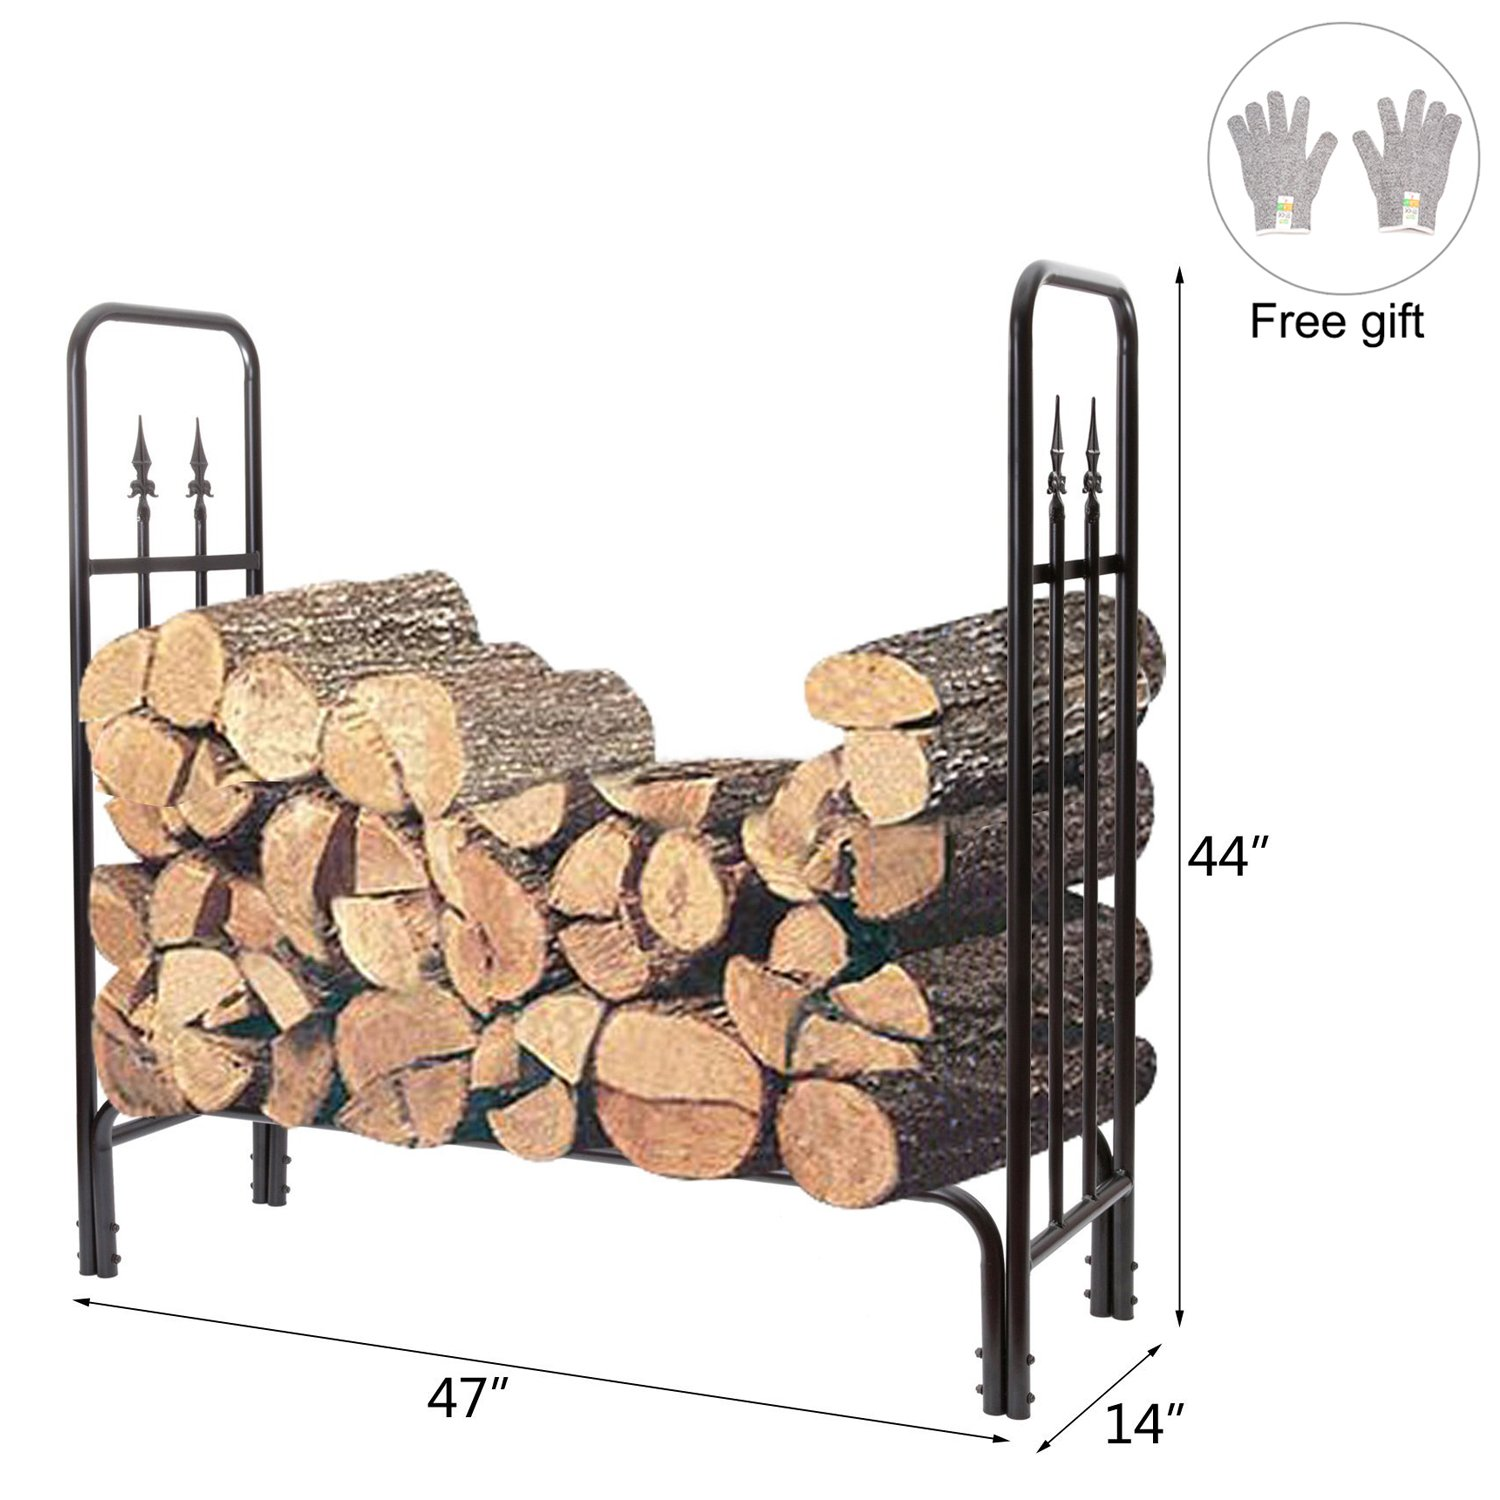 HollyHOME 4 Feet Heavy Duty Indoor/Outdoor Decorative Firewood Racks Steel Wood Storage Log Rack Holder, 900 Pound Weight Capacity